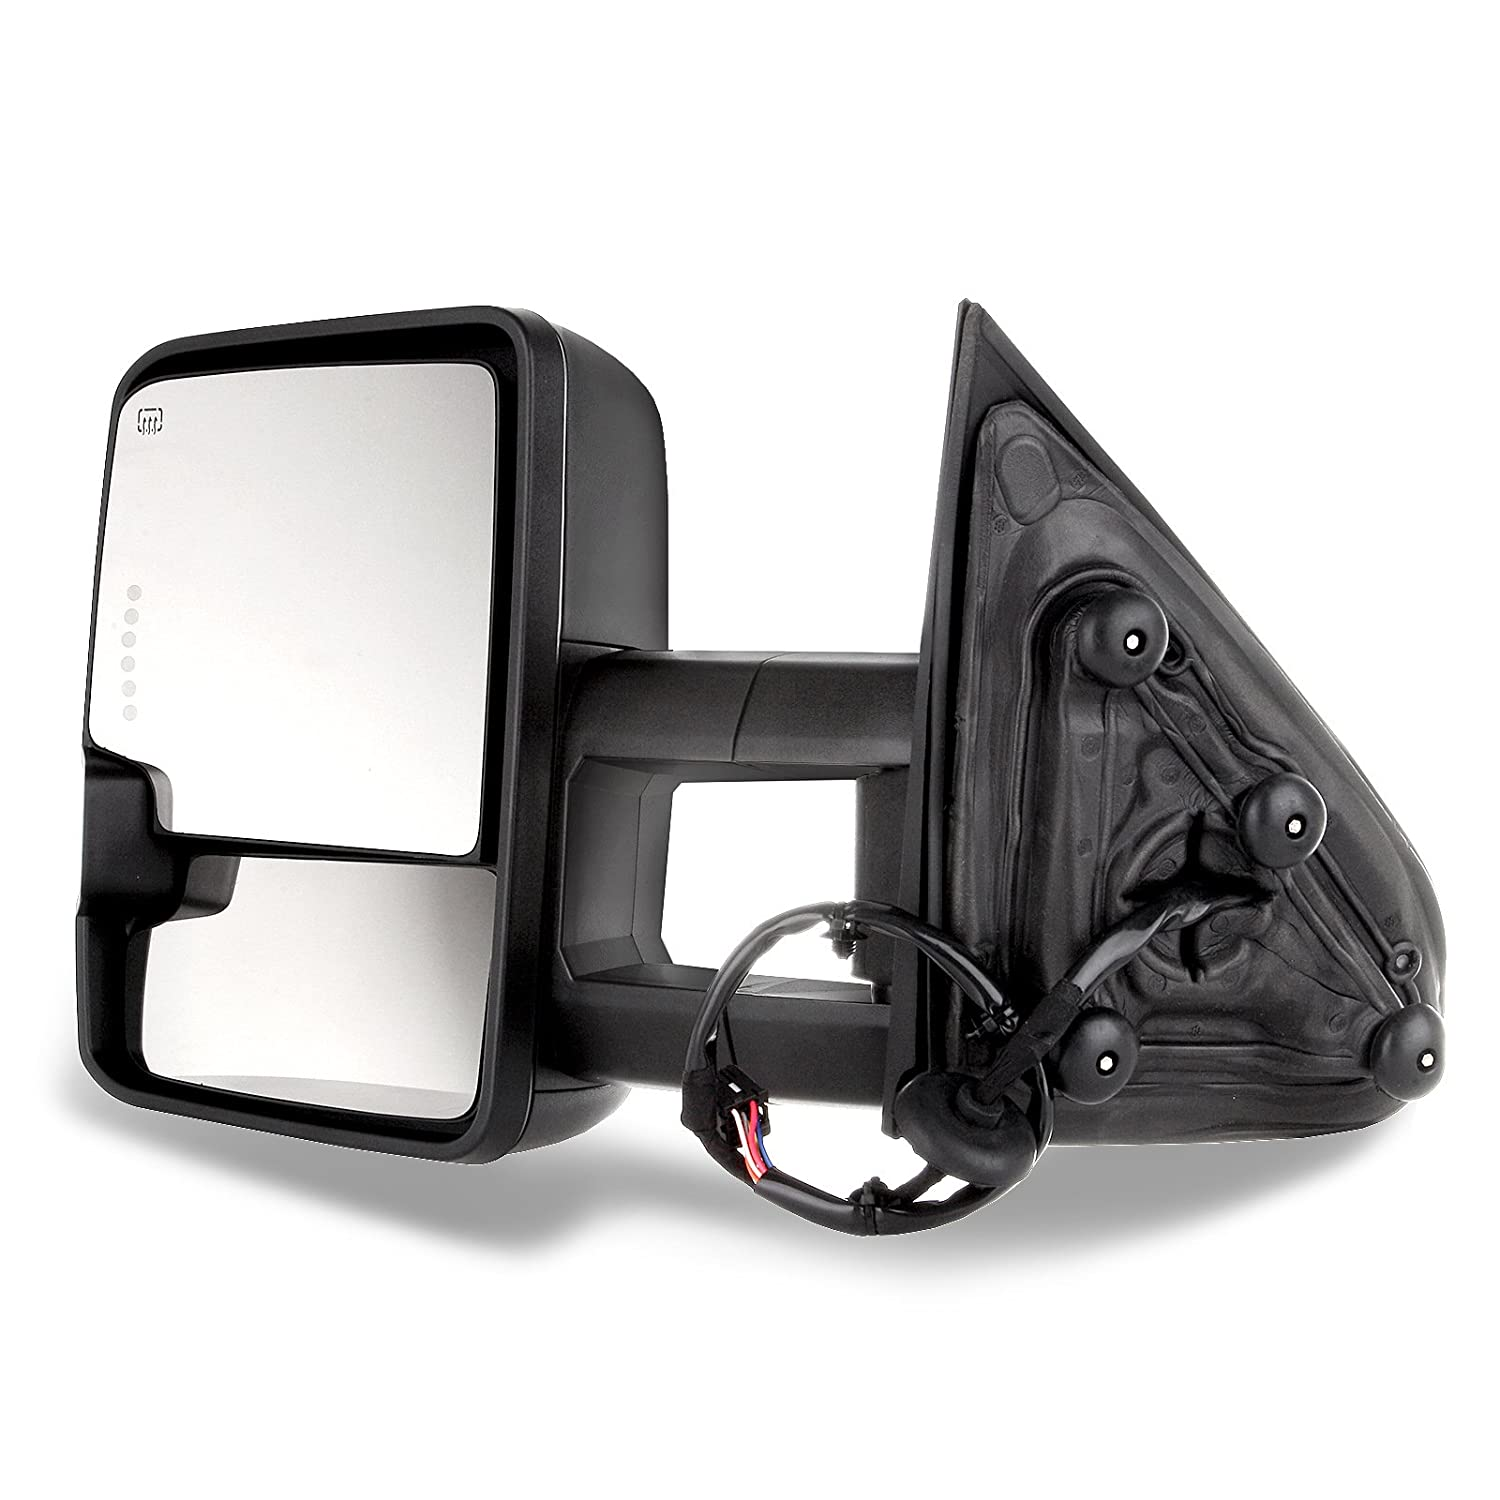 SCITOO for Chevy GMC Towing Mirrors Black Rear View Mirrors for 2014-2018 Chevy Silverado//GMC Sierra 1500 2015-2018 Chevy Silverado//GMC Sierra/2500 HD 3500HD with Power Heated Signal Backup Light 050964-5206-1659474024